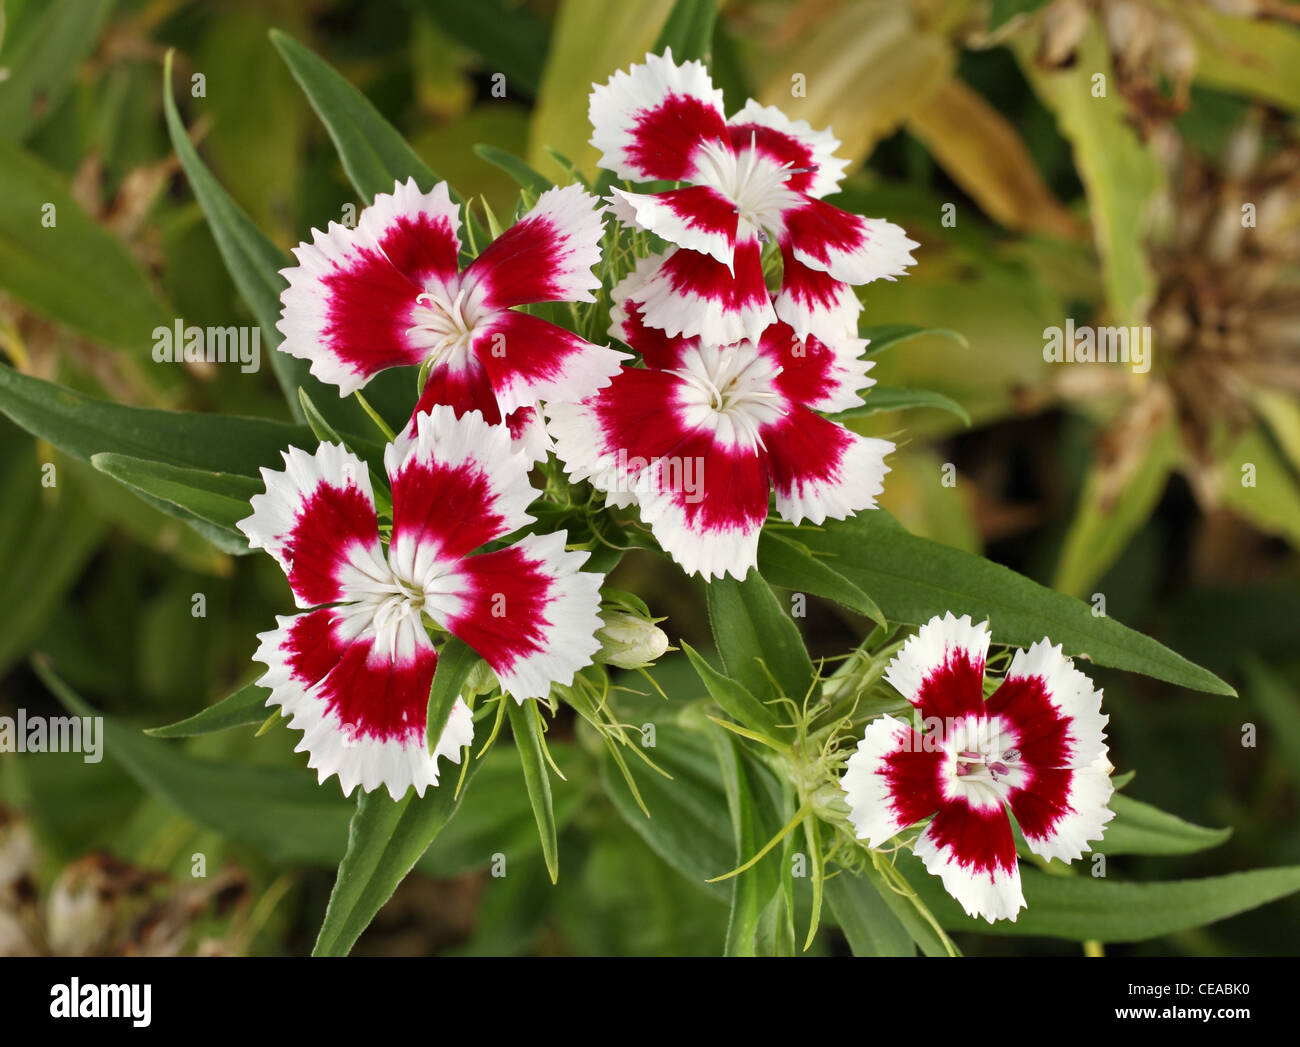 Small bunch of brightly colored red and white flowers stock photo small bunch of brightly colored red and white flowers mightylinksfo